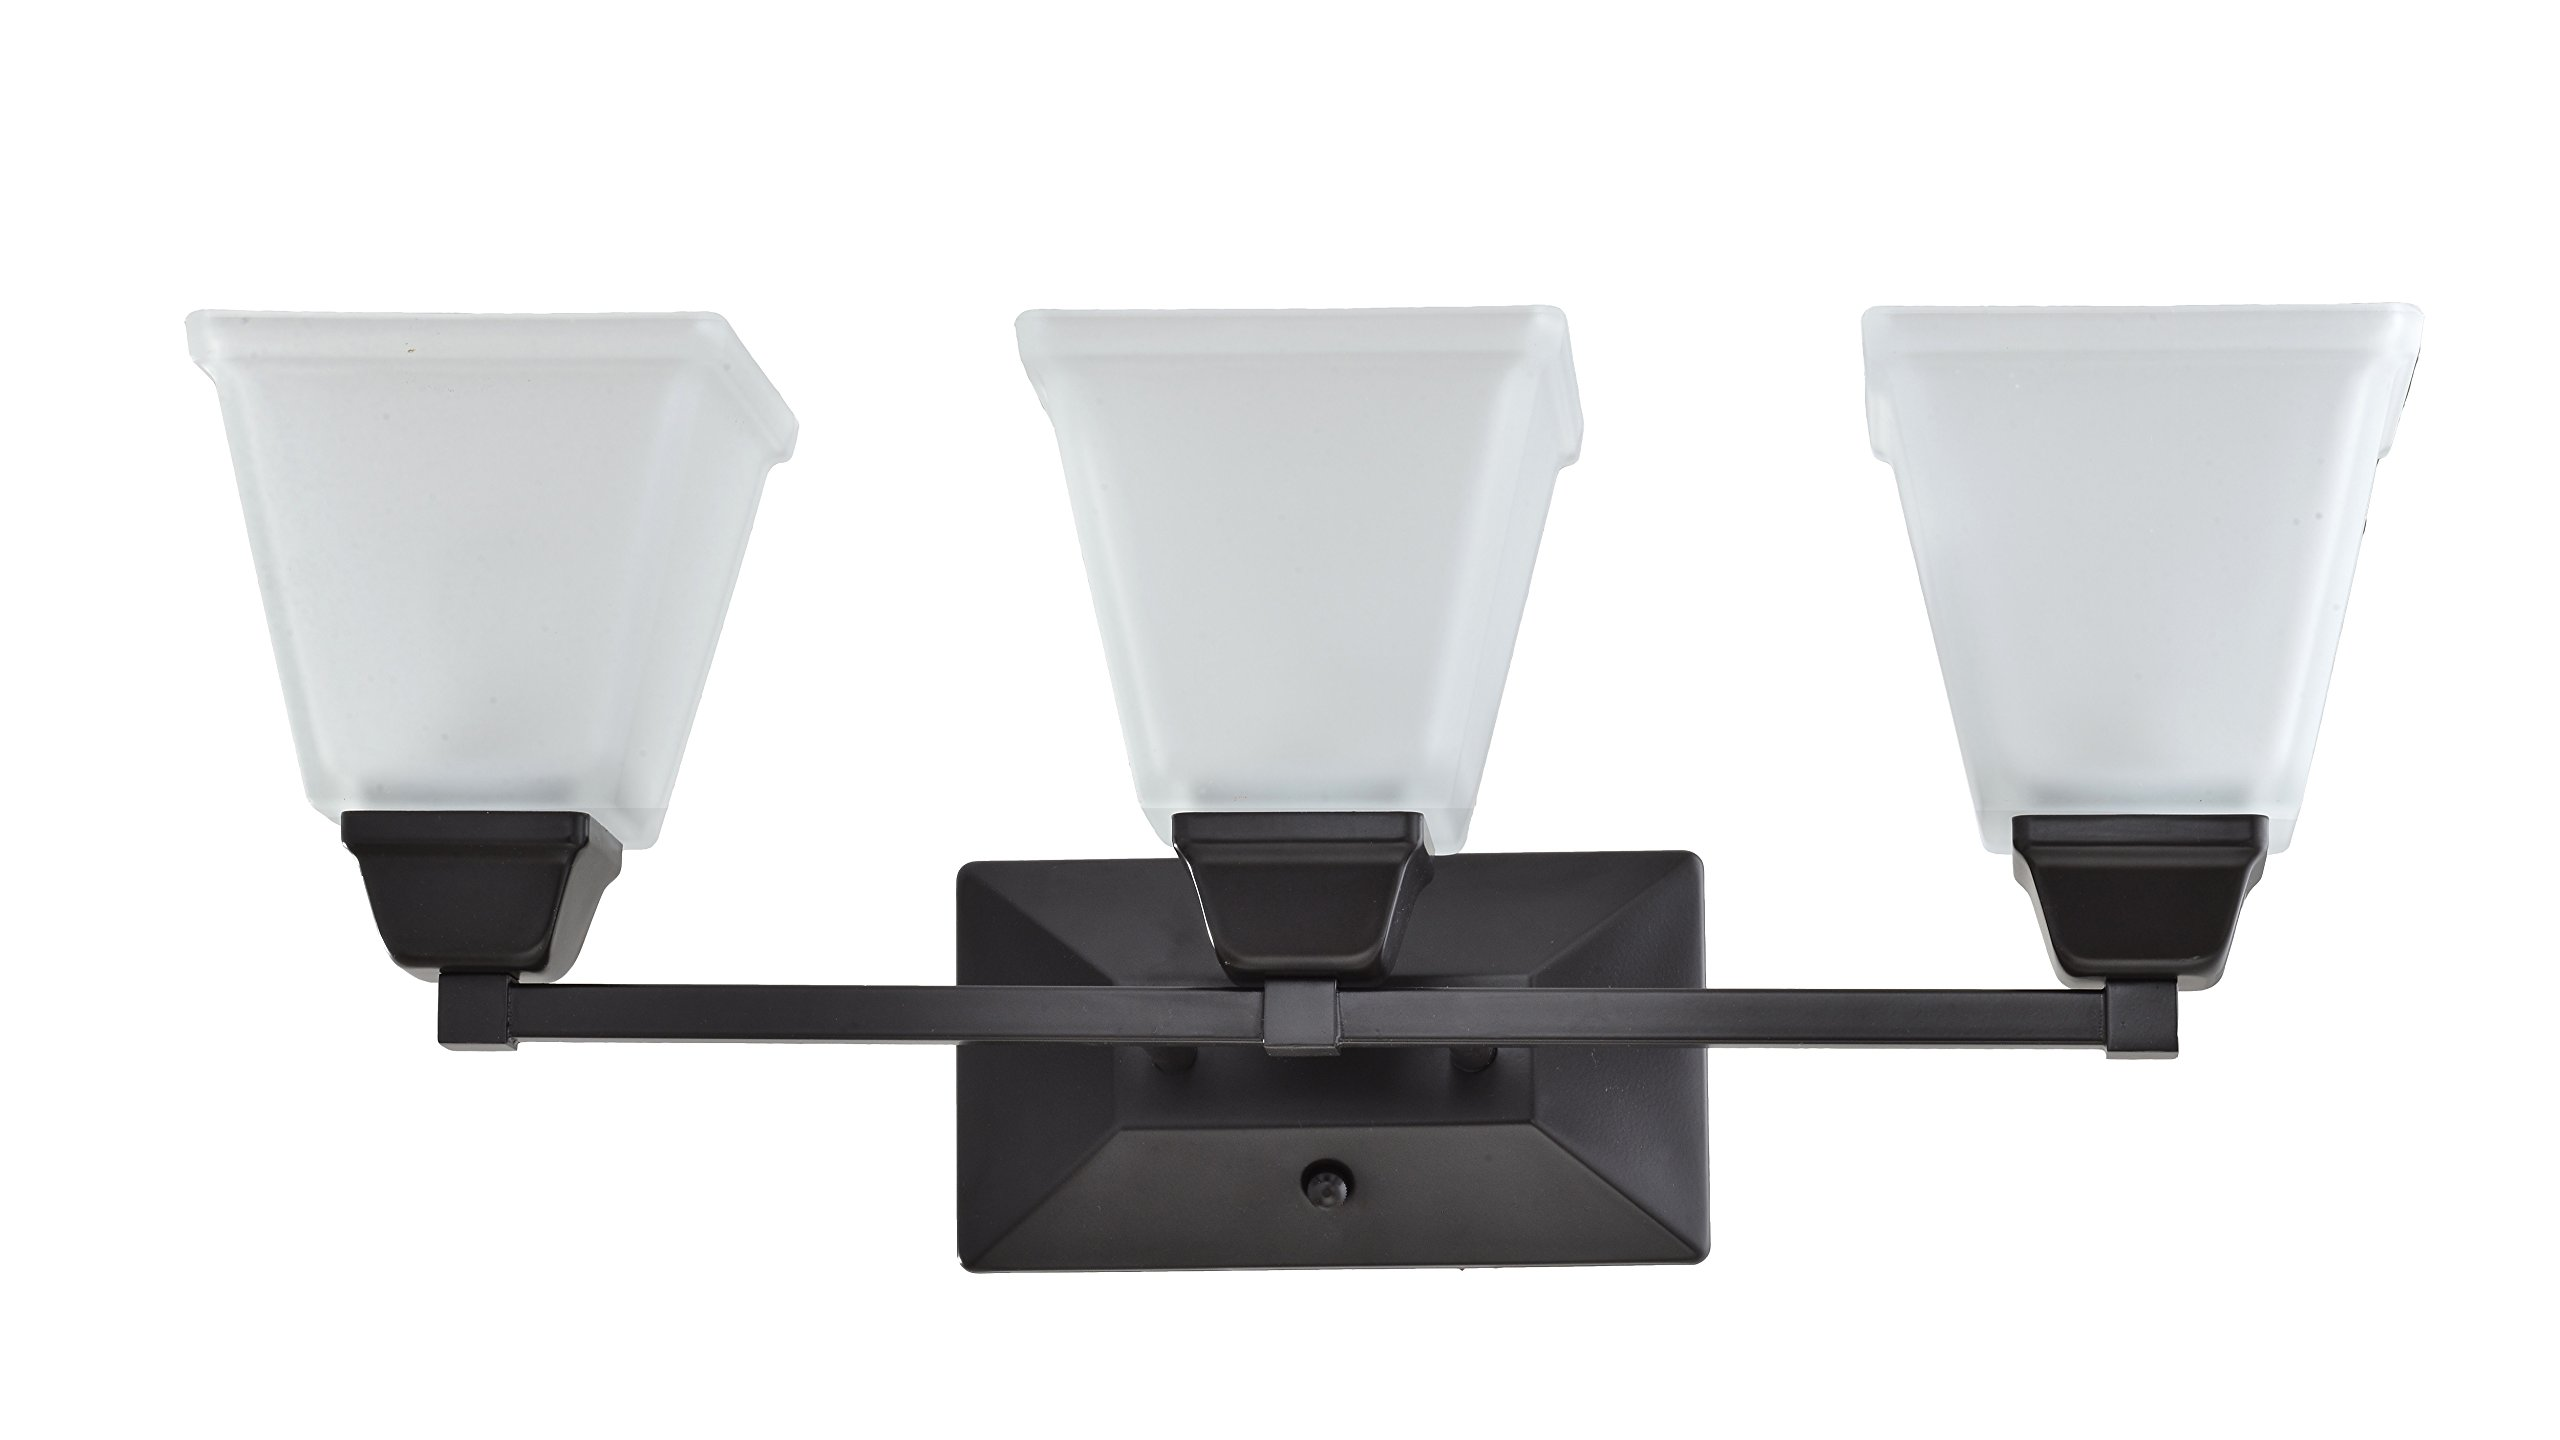 IN HOME 3-Light VANITY/BATHROOM FIXTURE VF37, Oil Rubbed Bronze Finish with Satin Etched Glass Shade, UL listed